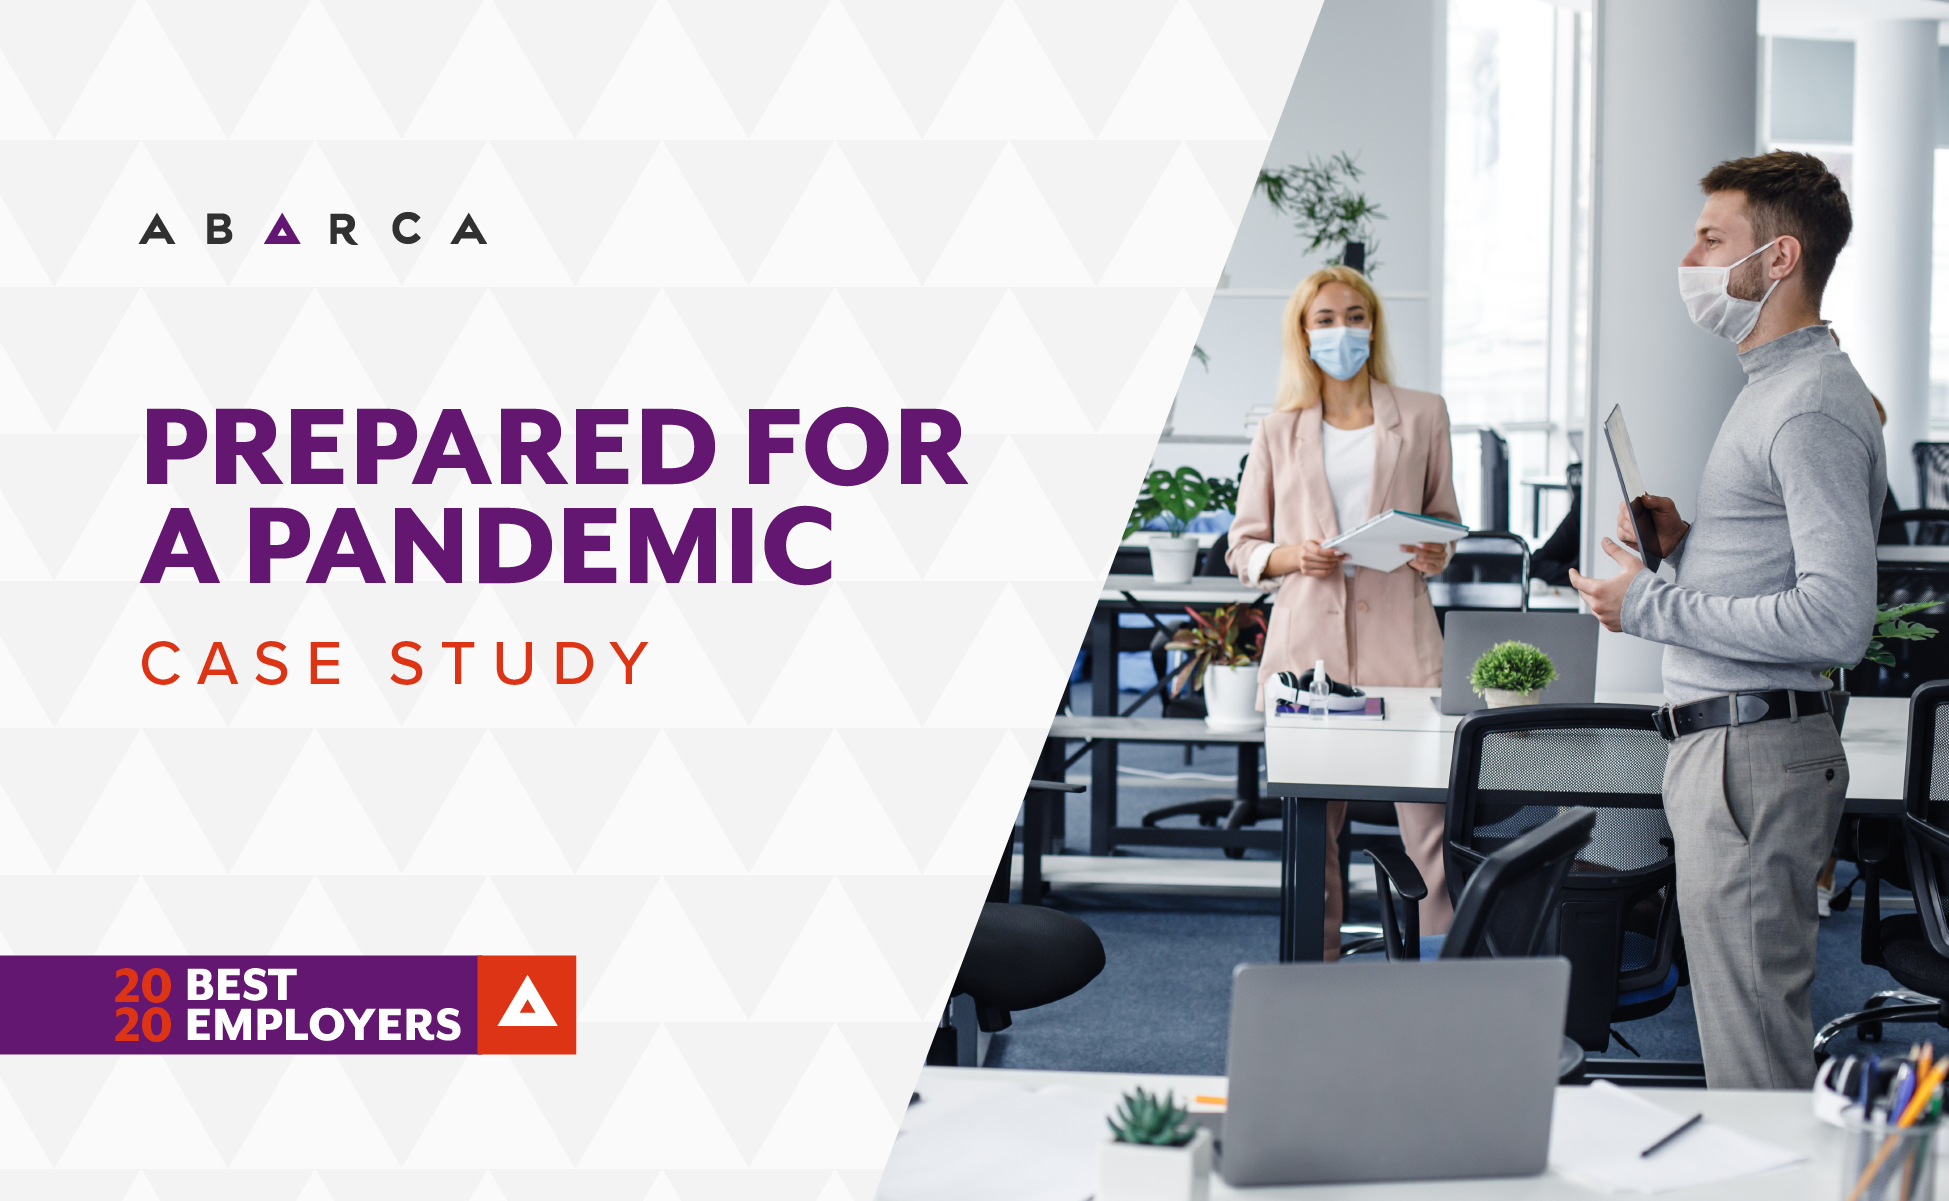 Abarca Health: Prepared for the pandemic